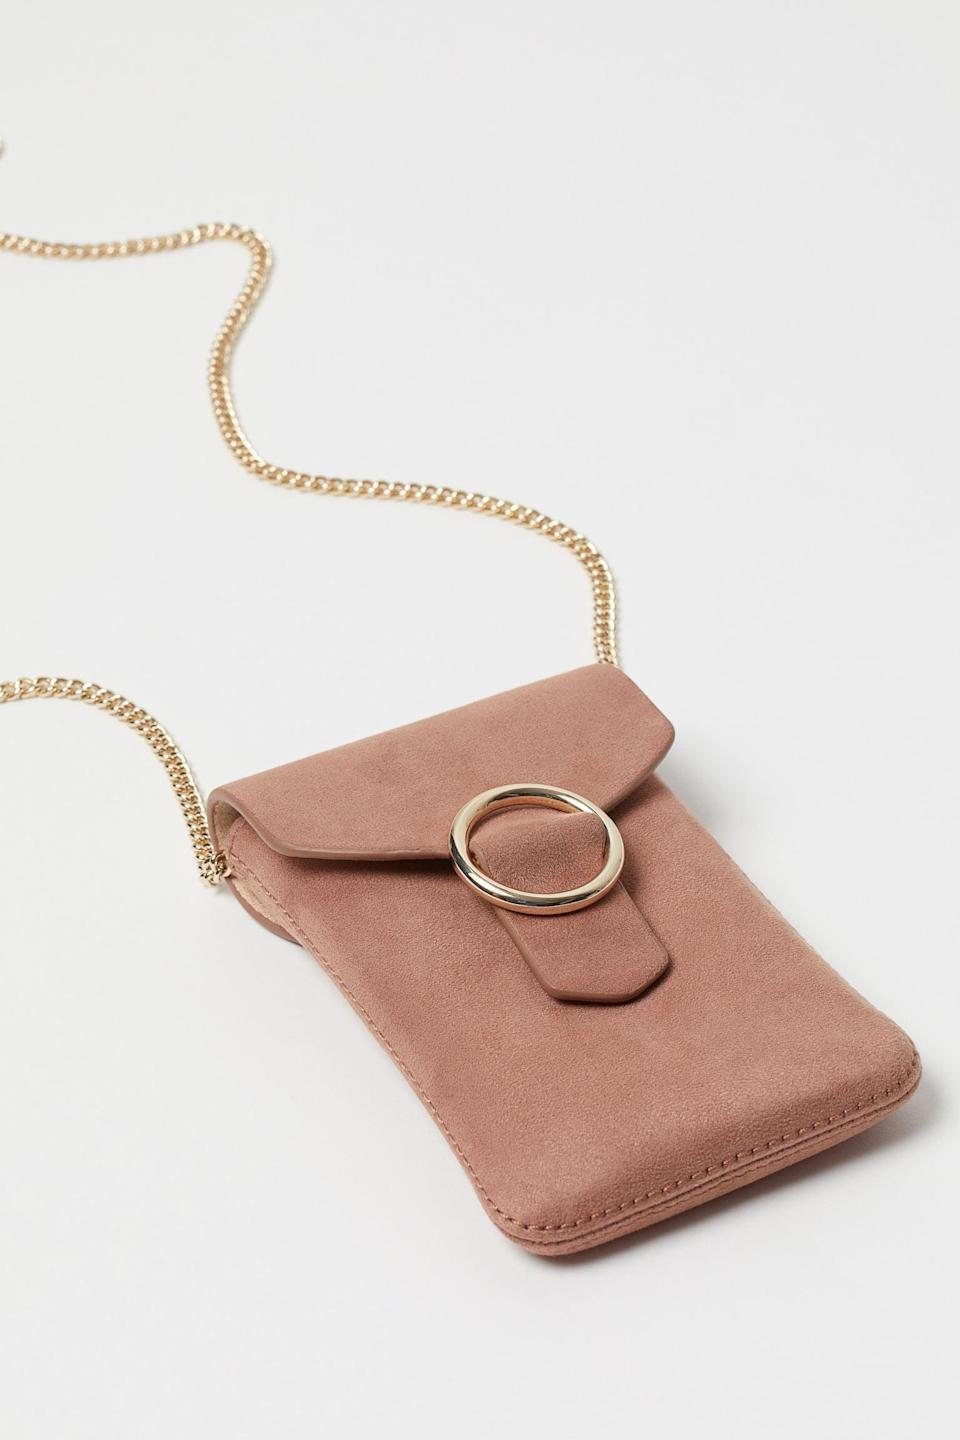 <p>Protect your phone with this super cute <span>Smartphone Bag</span> ($18)</p>